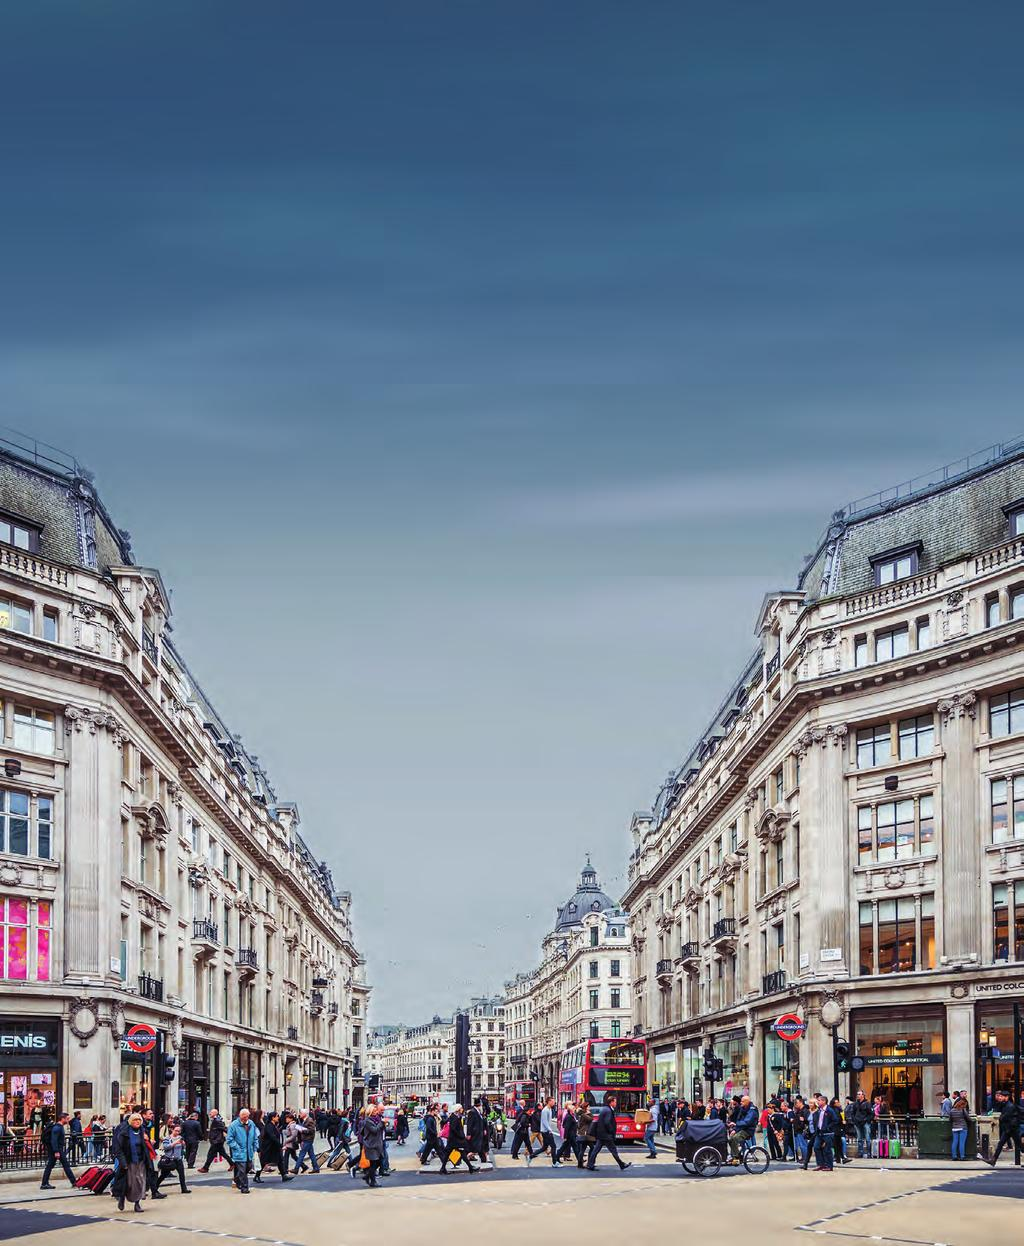 Oxford Street, Long cre and heapside Oxford Street records the highest footfall in our survey.